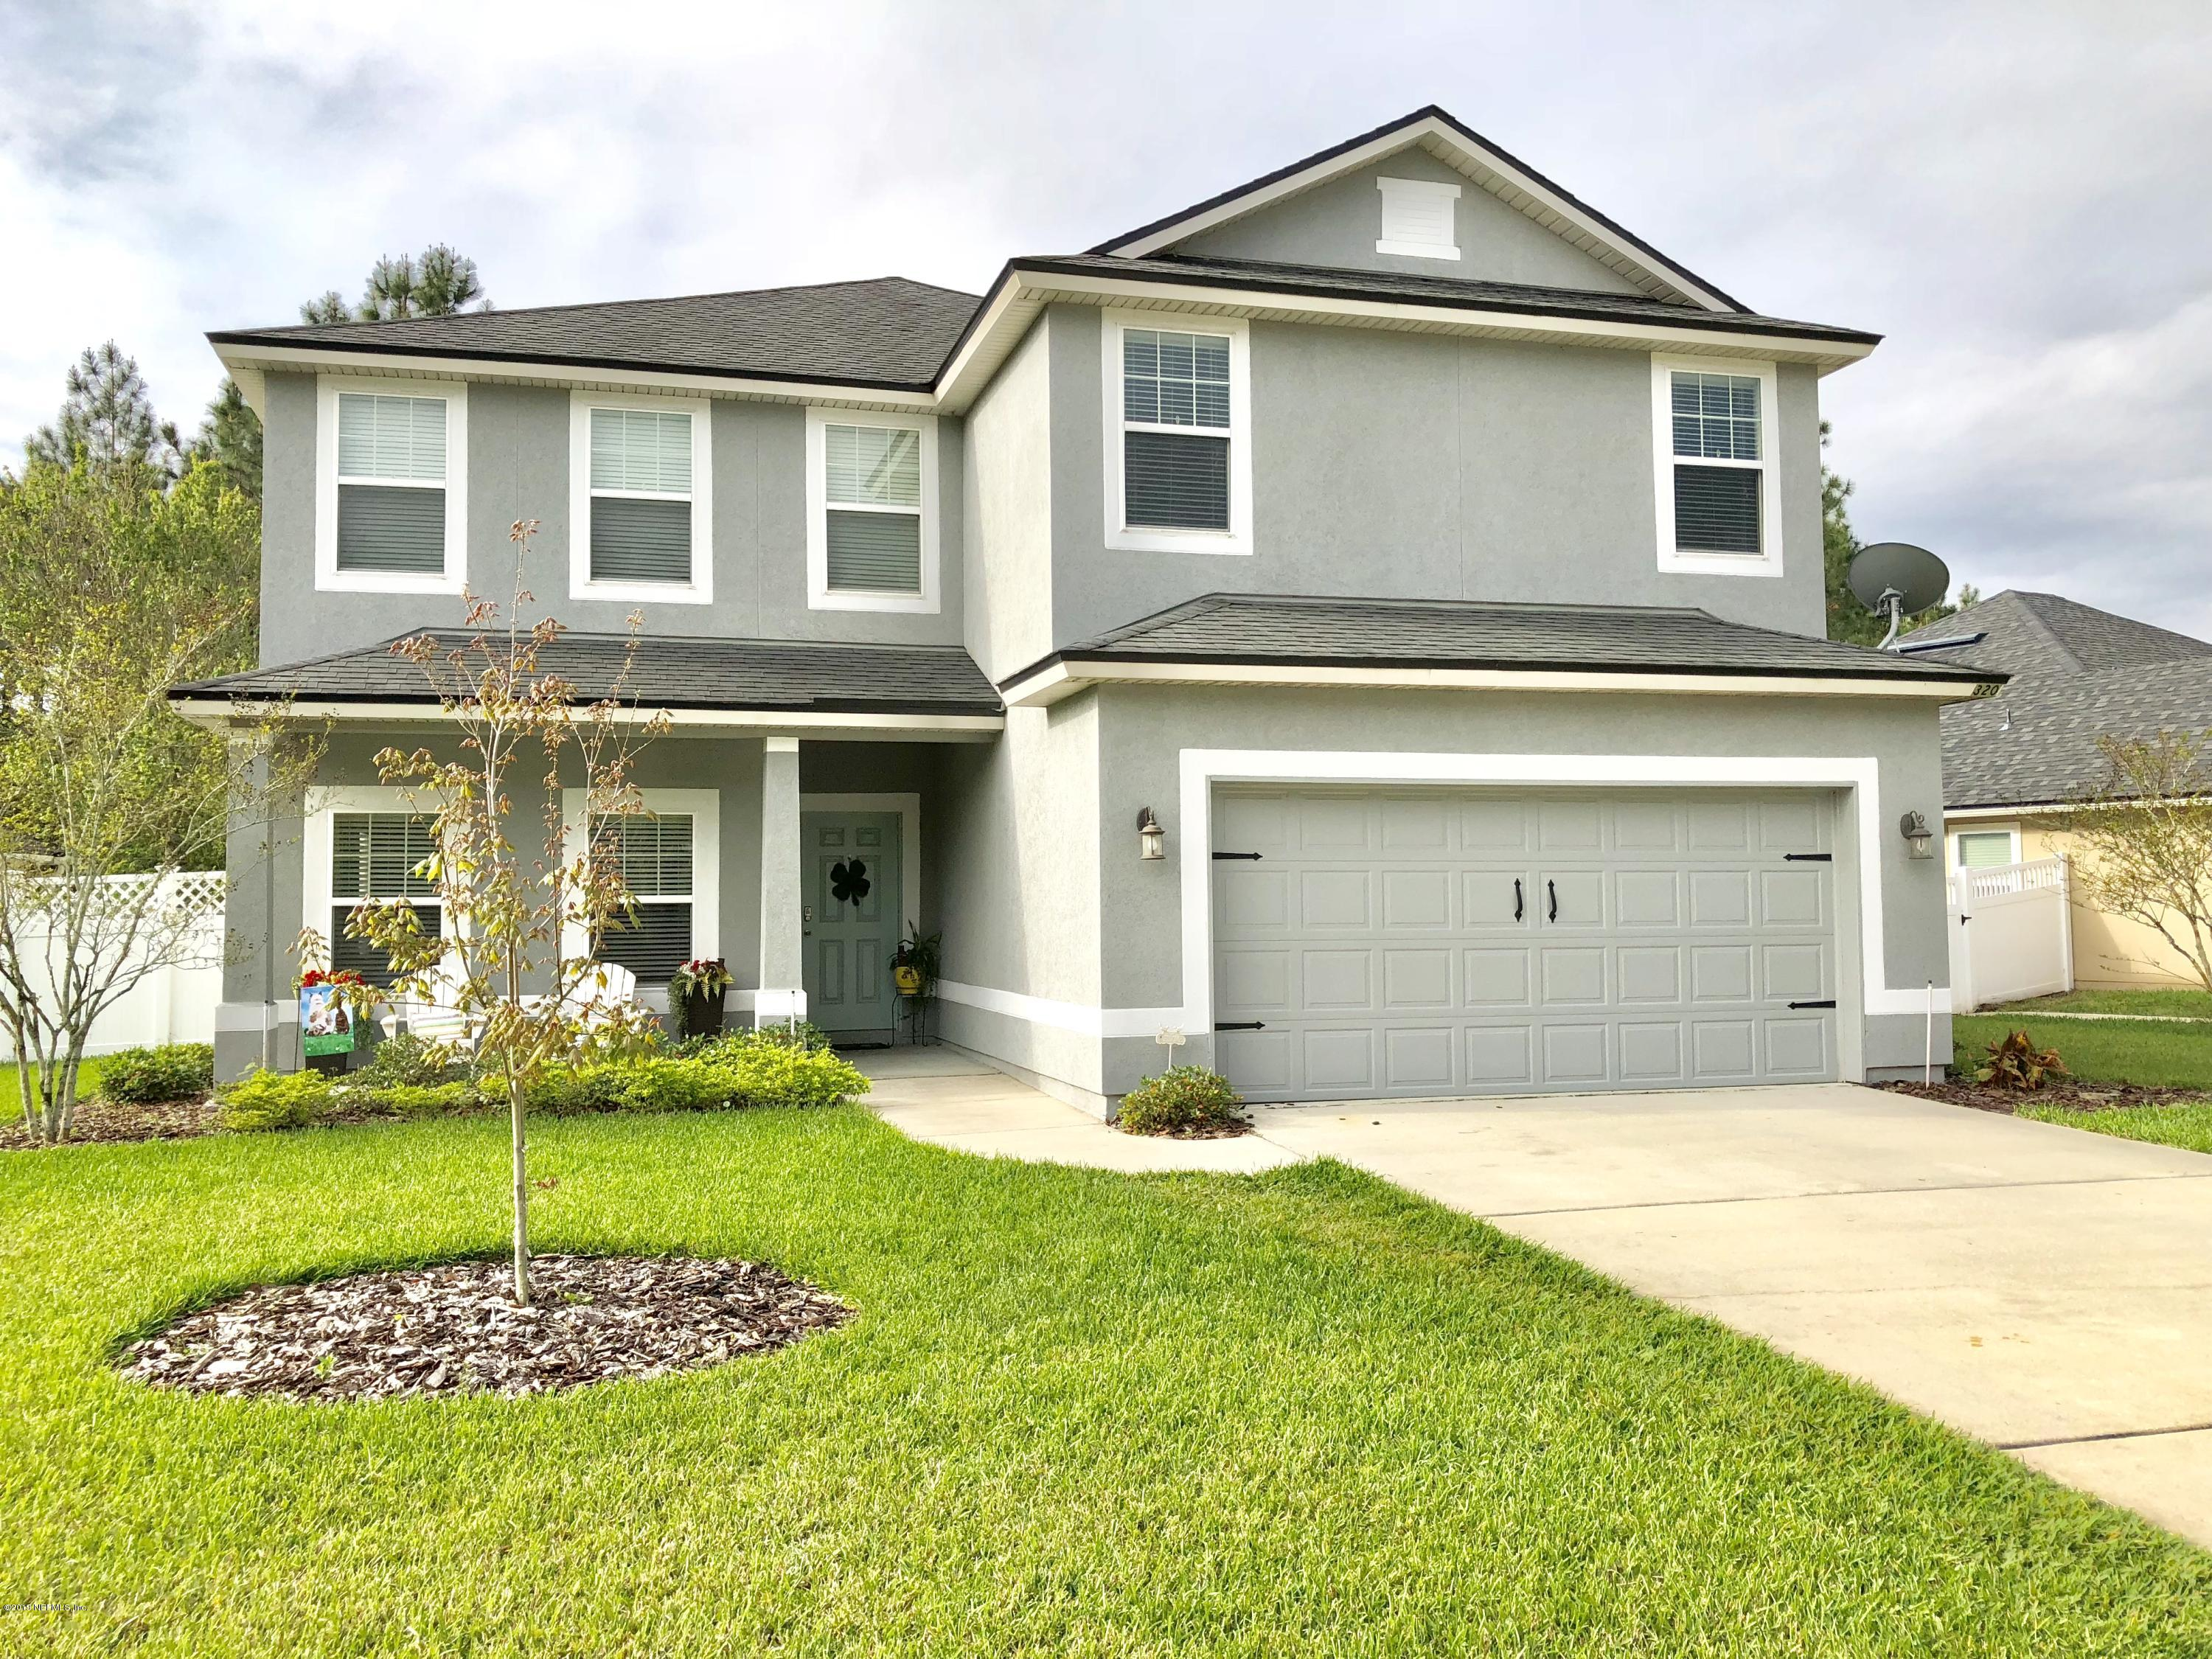 320 W ADELAIDE DR, Julington Creek in ST. JOHNS County, FL 32259 Home for Sale